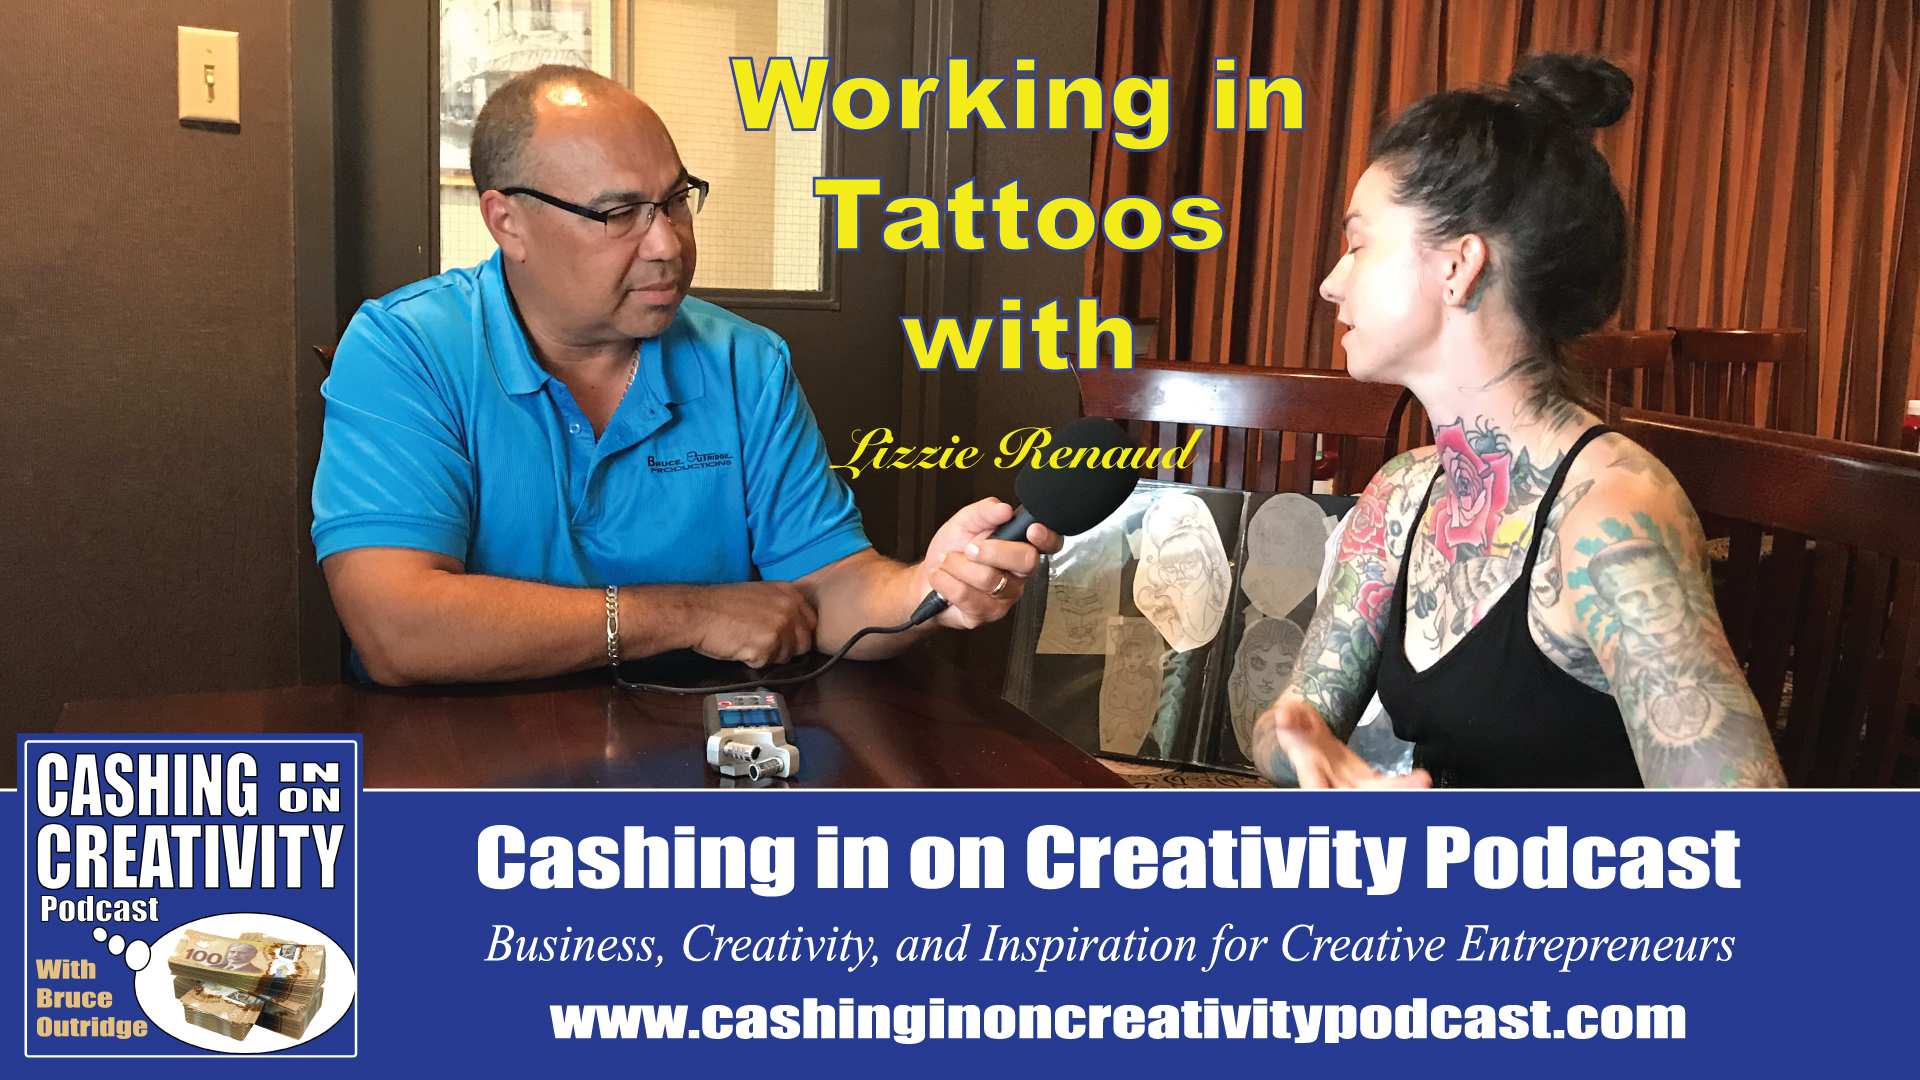 Tattoos with Lizzie Renaud